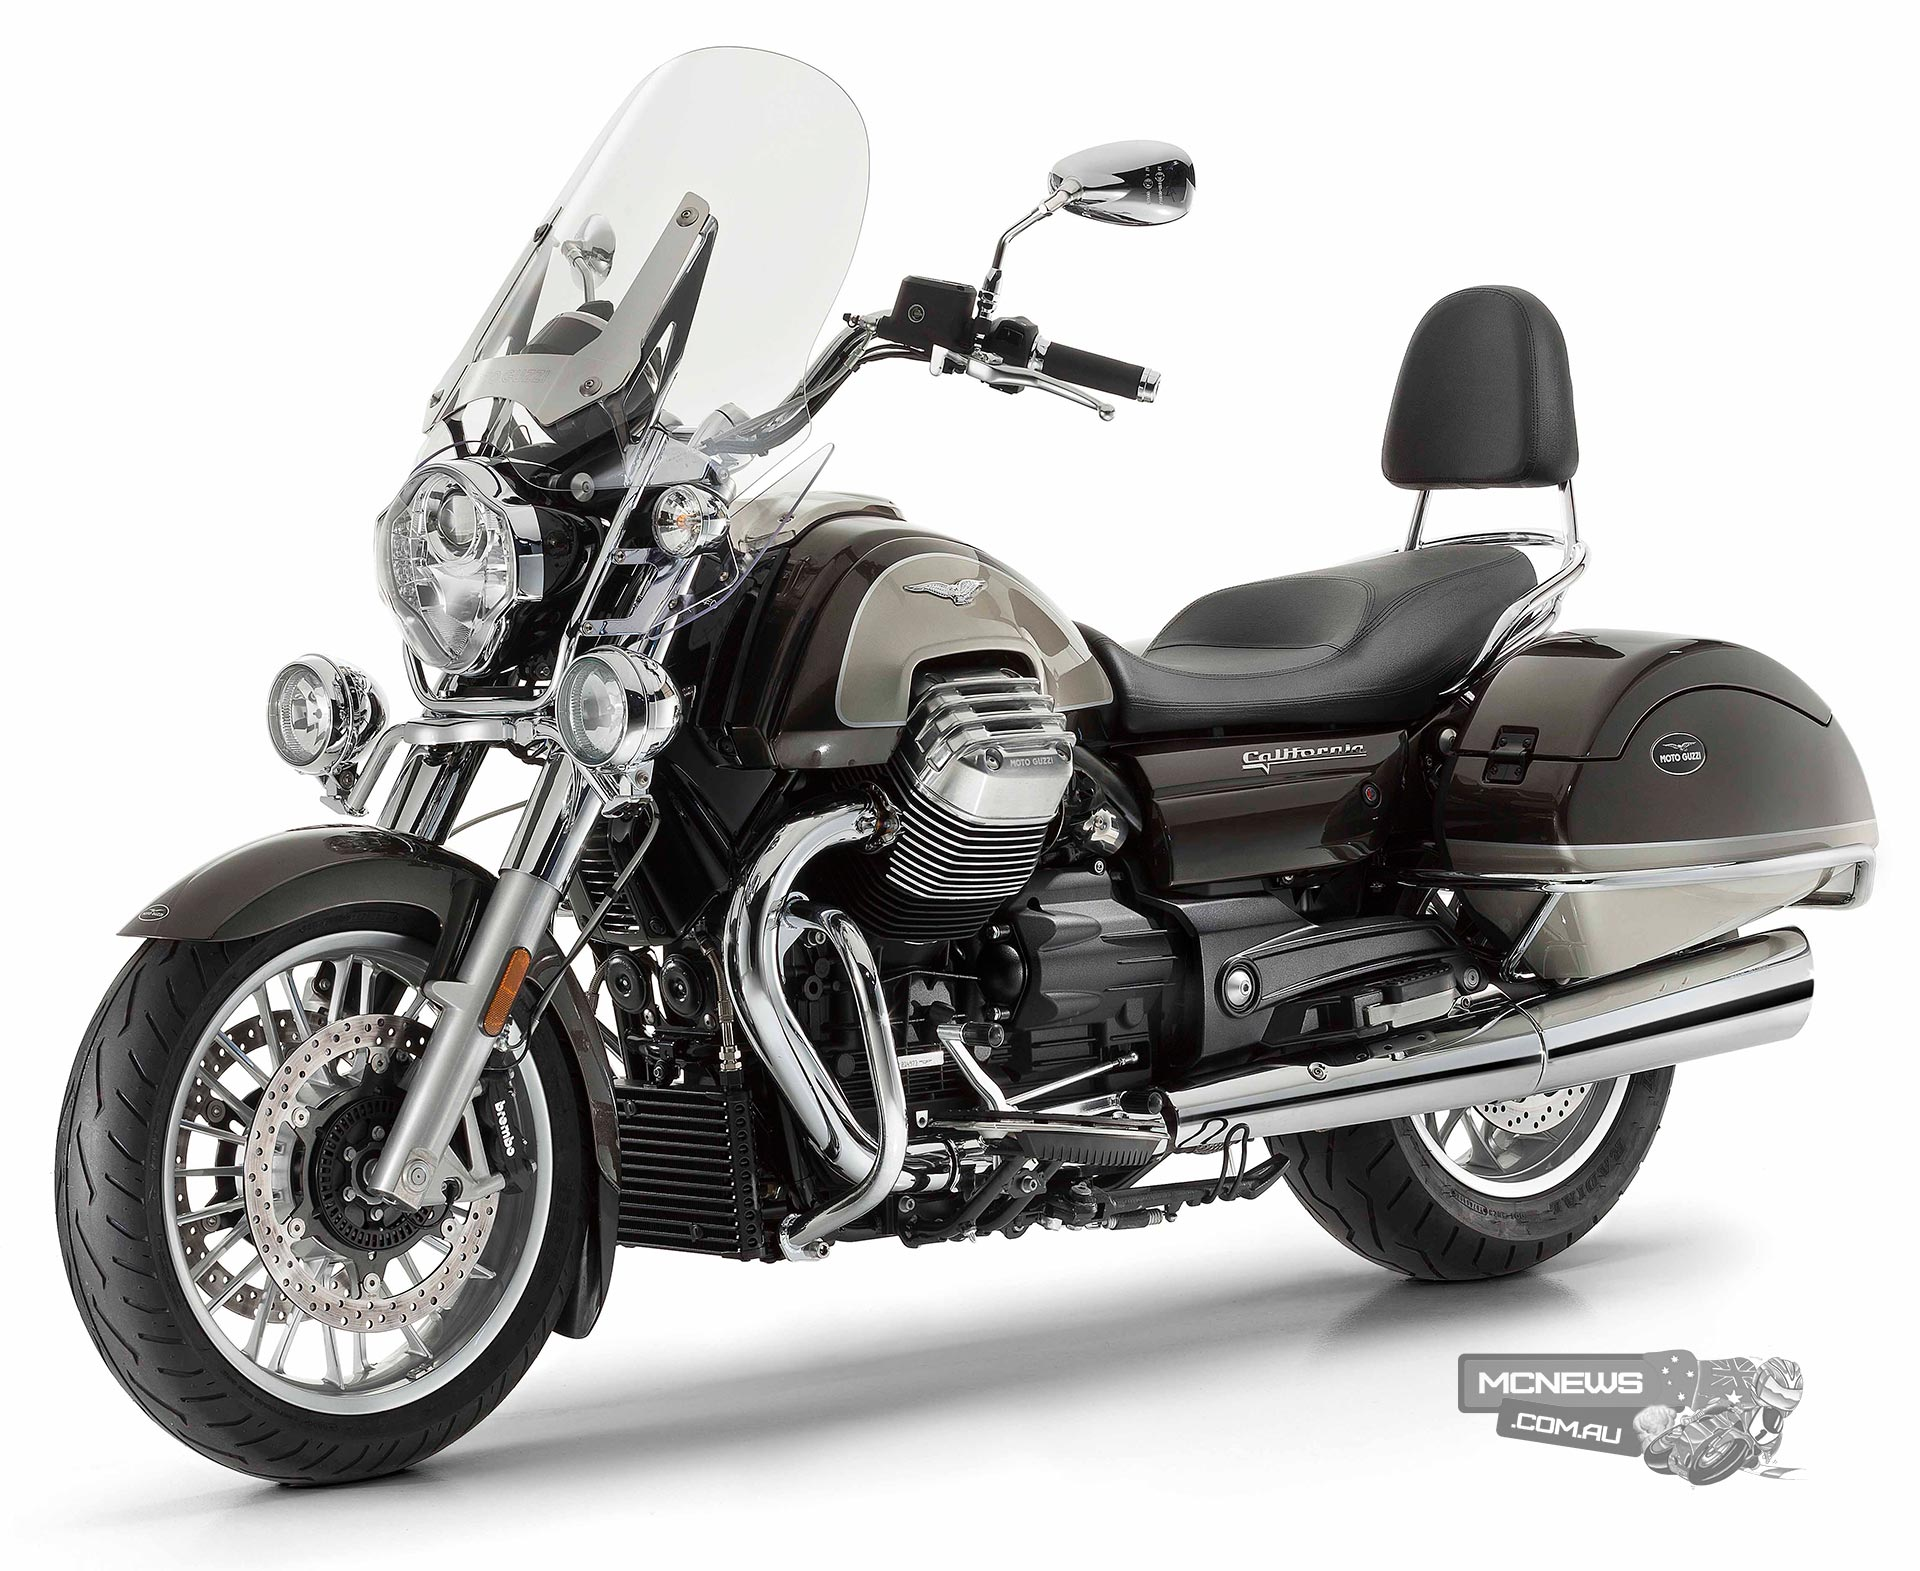 Moto Guzzi California 1400 Touring Special Edition